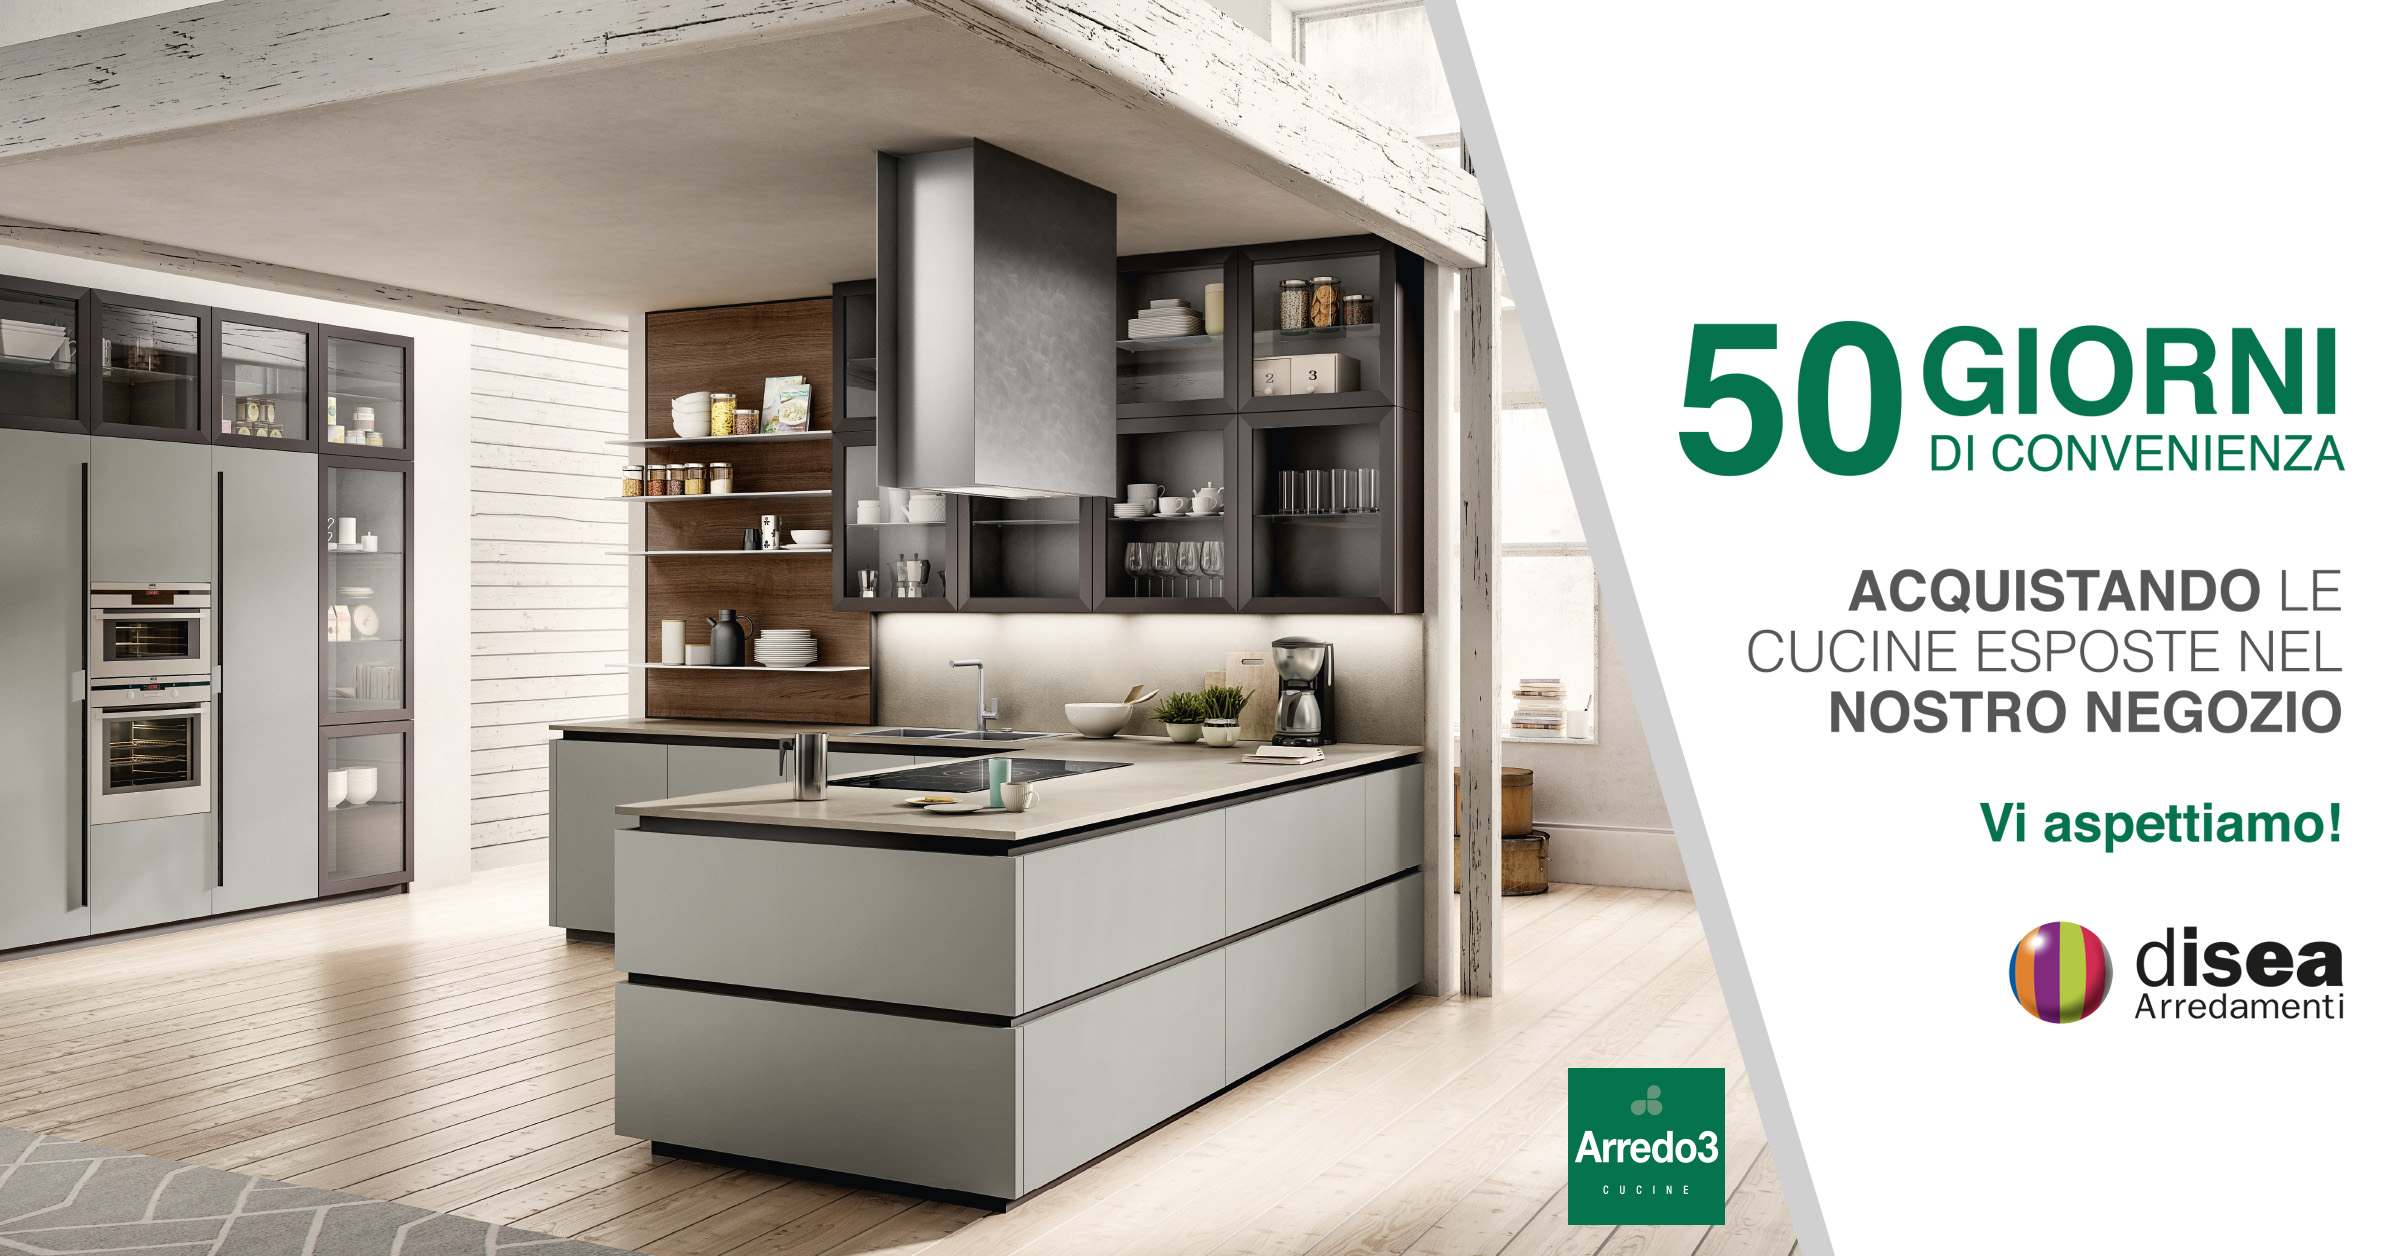 beautiful giorni di convenienza acquistando le cucine esposte with bontempi cucine